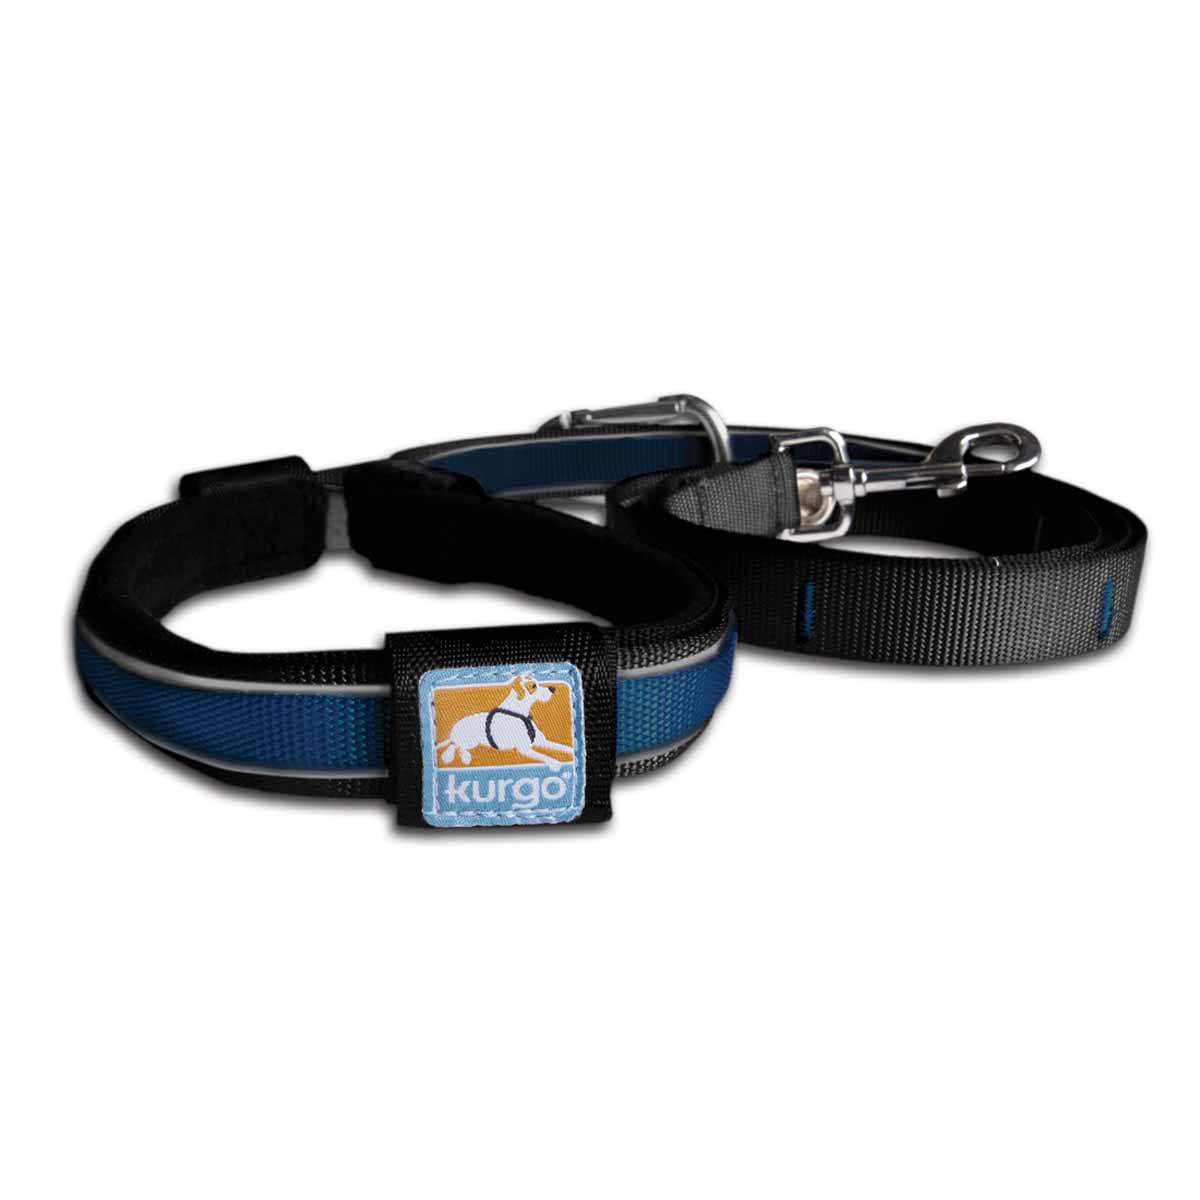 Reflect and Protect Quantum Dog Leash by Kurgo - Coastal Blue